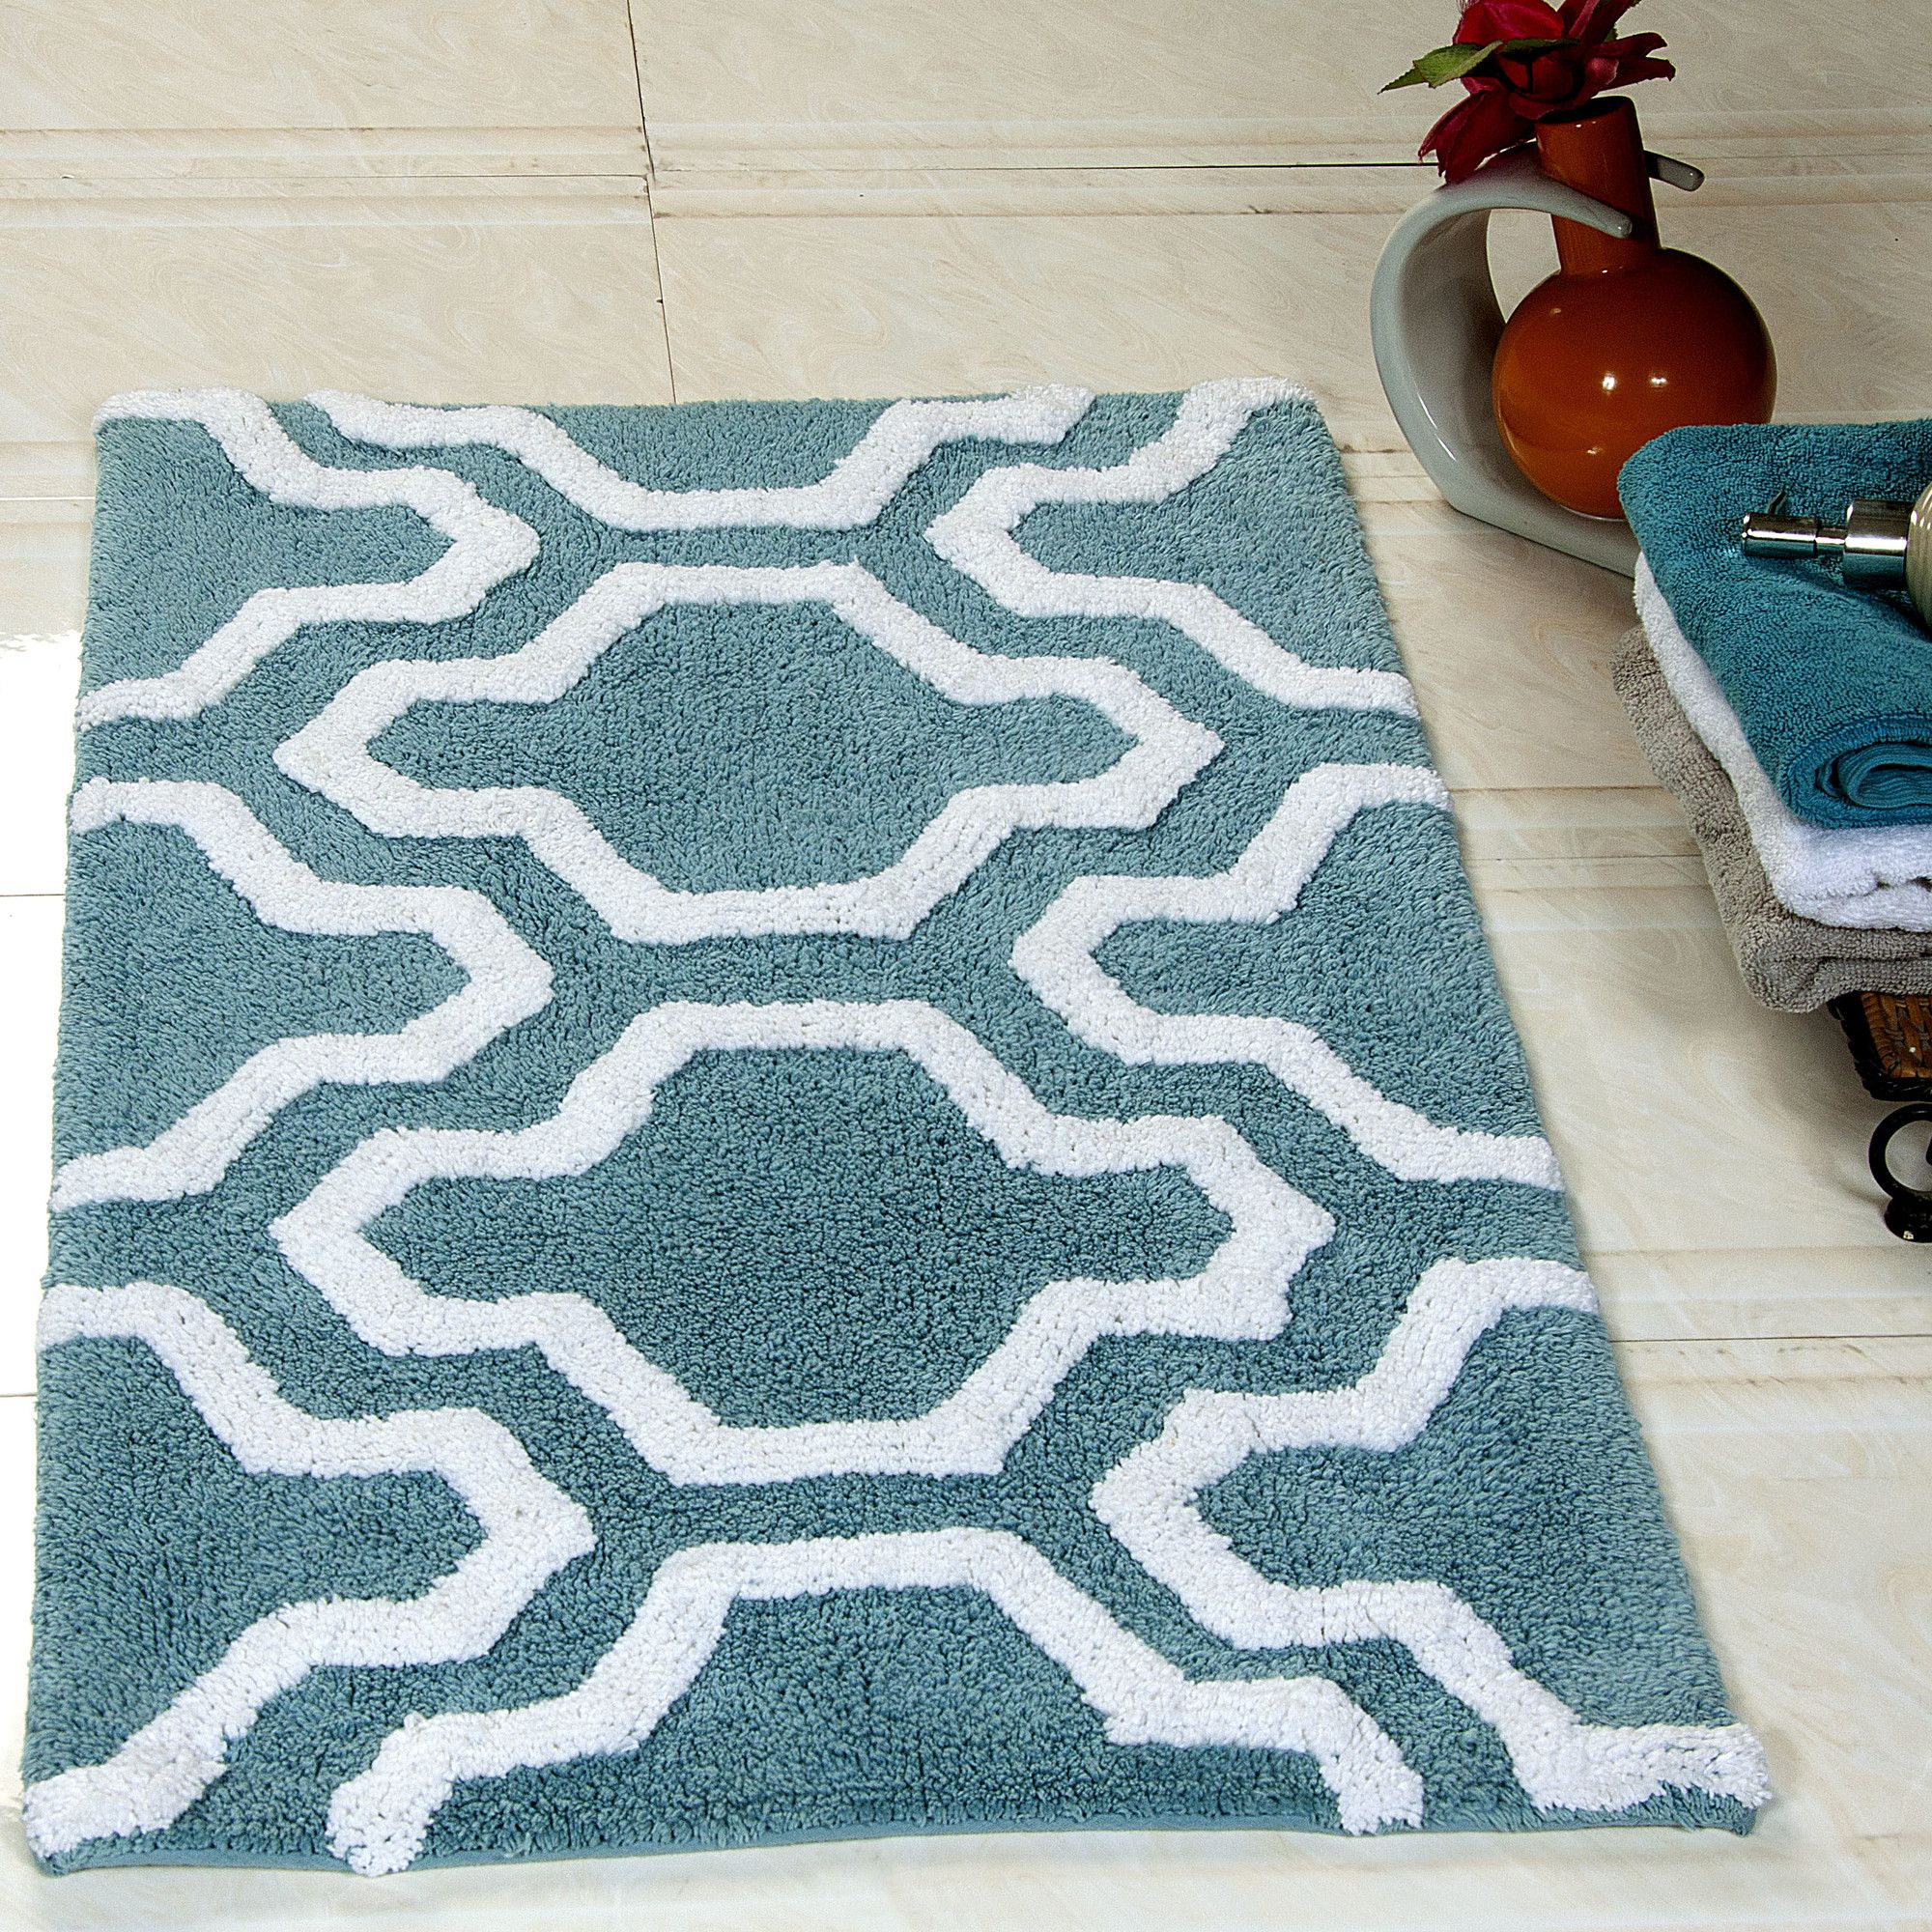 2 Piece Bath Rug Set Products Rugs Bath Rugs Rug Size